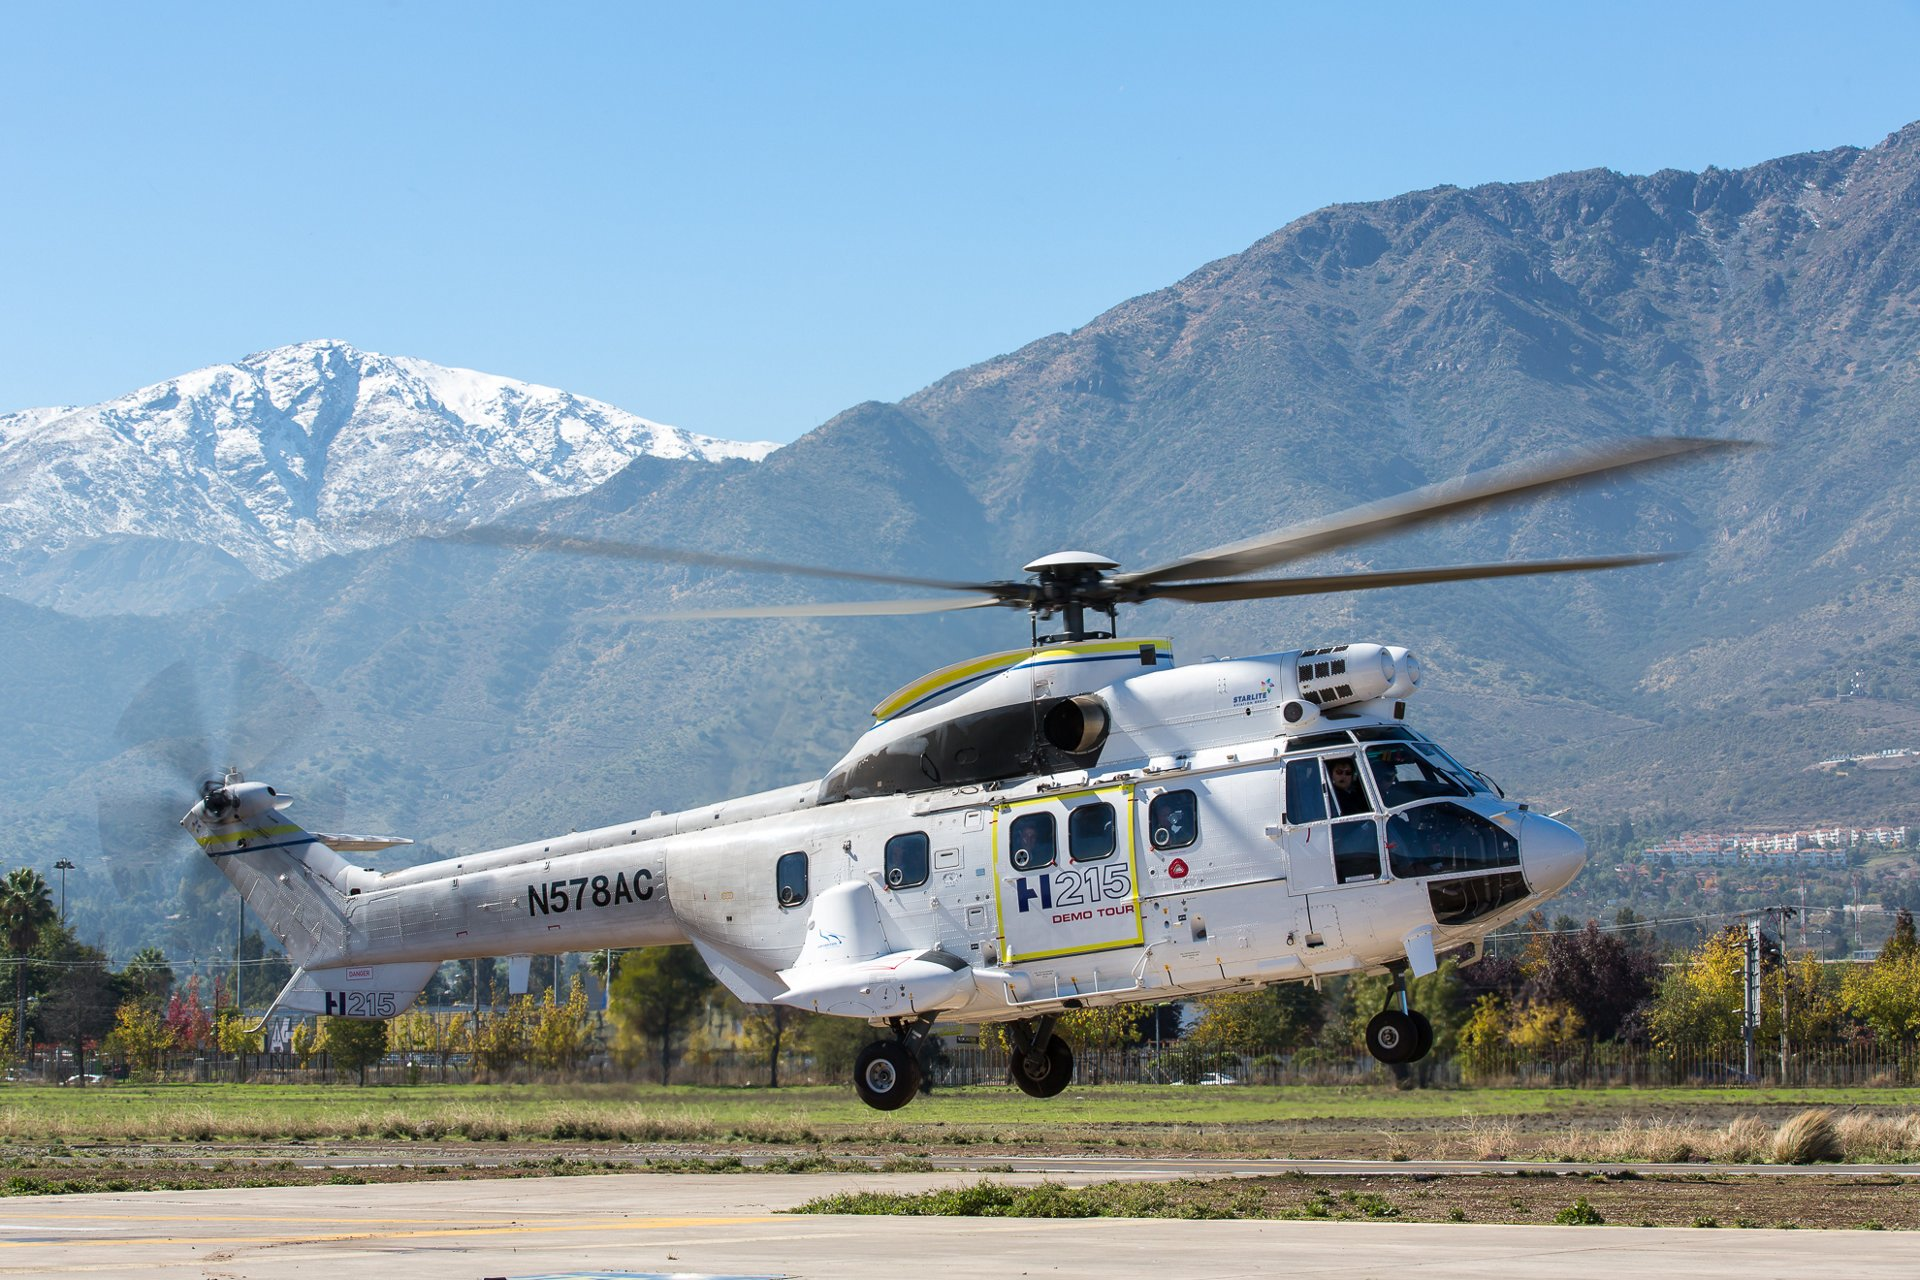 The H215 in action on its Latin America Demo Tour